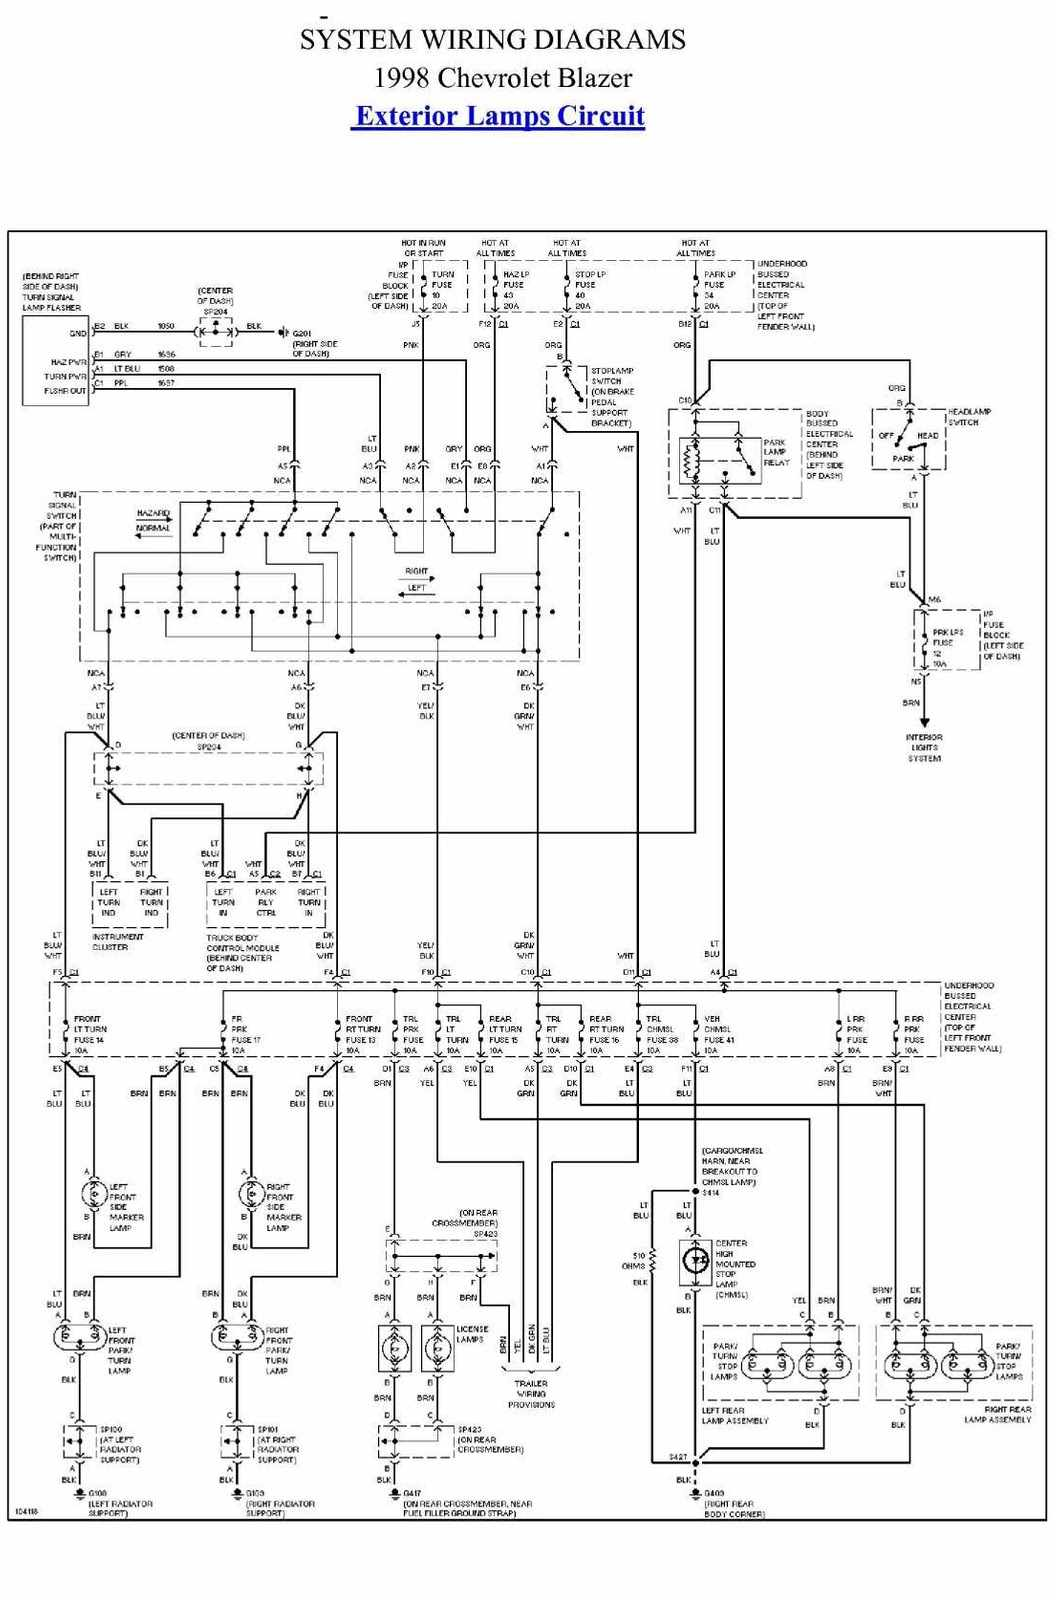 1998 chevy s10 pick up wiring diagram 1998 chevy s10 ignition switch wiring diagram #9